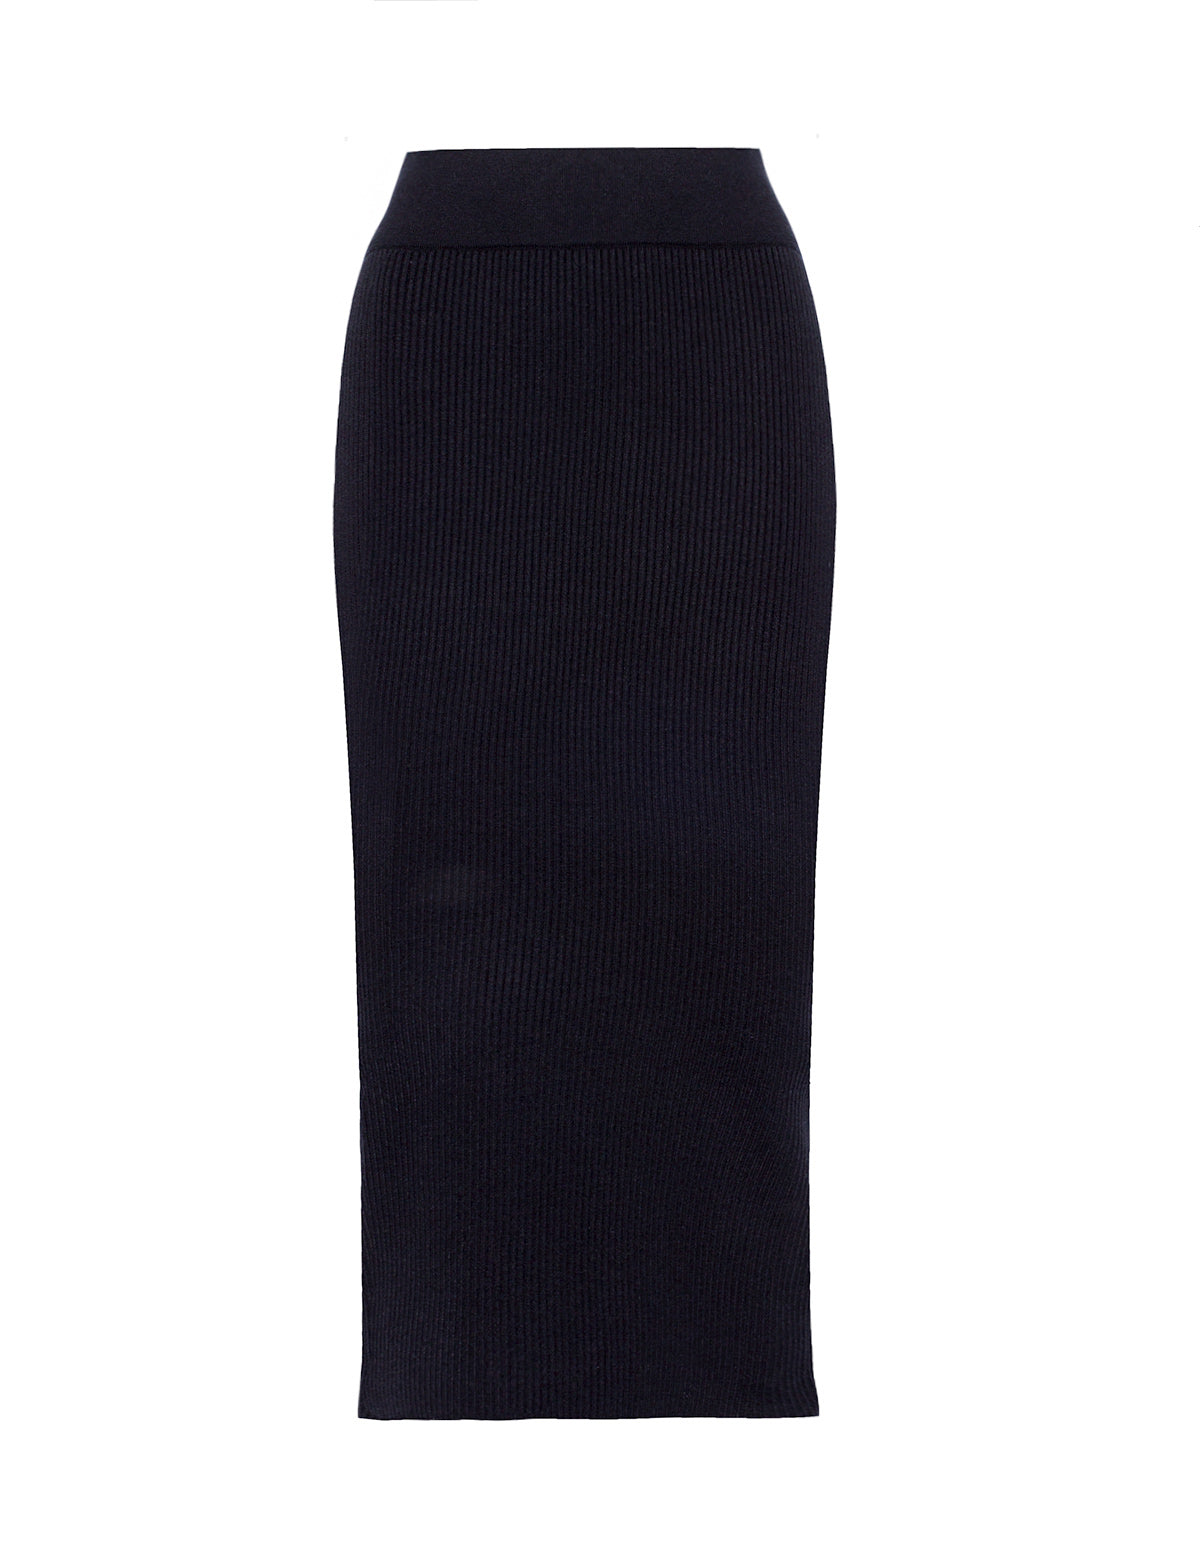 black-ribbed-knit-midi-skirt